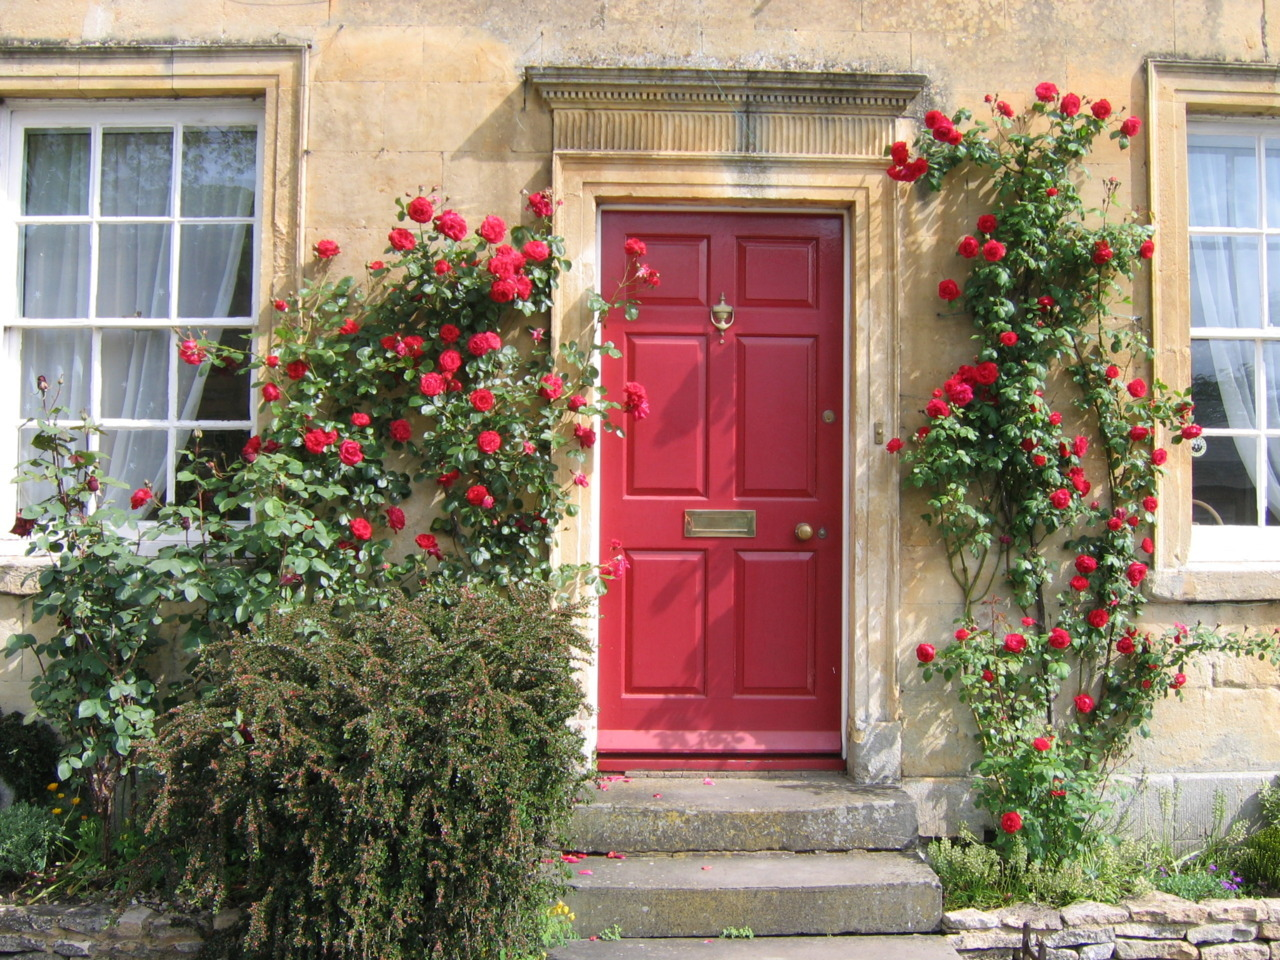 enchantedengland:    Red door, climbing roses, Cotswold cottage- next to Rye this must be England at its most picturesque. This is in Moreton-on-Marsh, one of the lesser photographed Cotswold villages, in Gloucestershire. (UGArdener on flickr)  Cloggy:— We love Morton-in-Marsh. Stayed thereabouts several times. One time we were holidaying in Bournemouth and broke our journey at Morton-in-Marsh on the way down and it took us all our willpower to tear ourselves away and continue on.